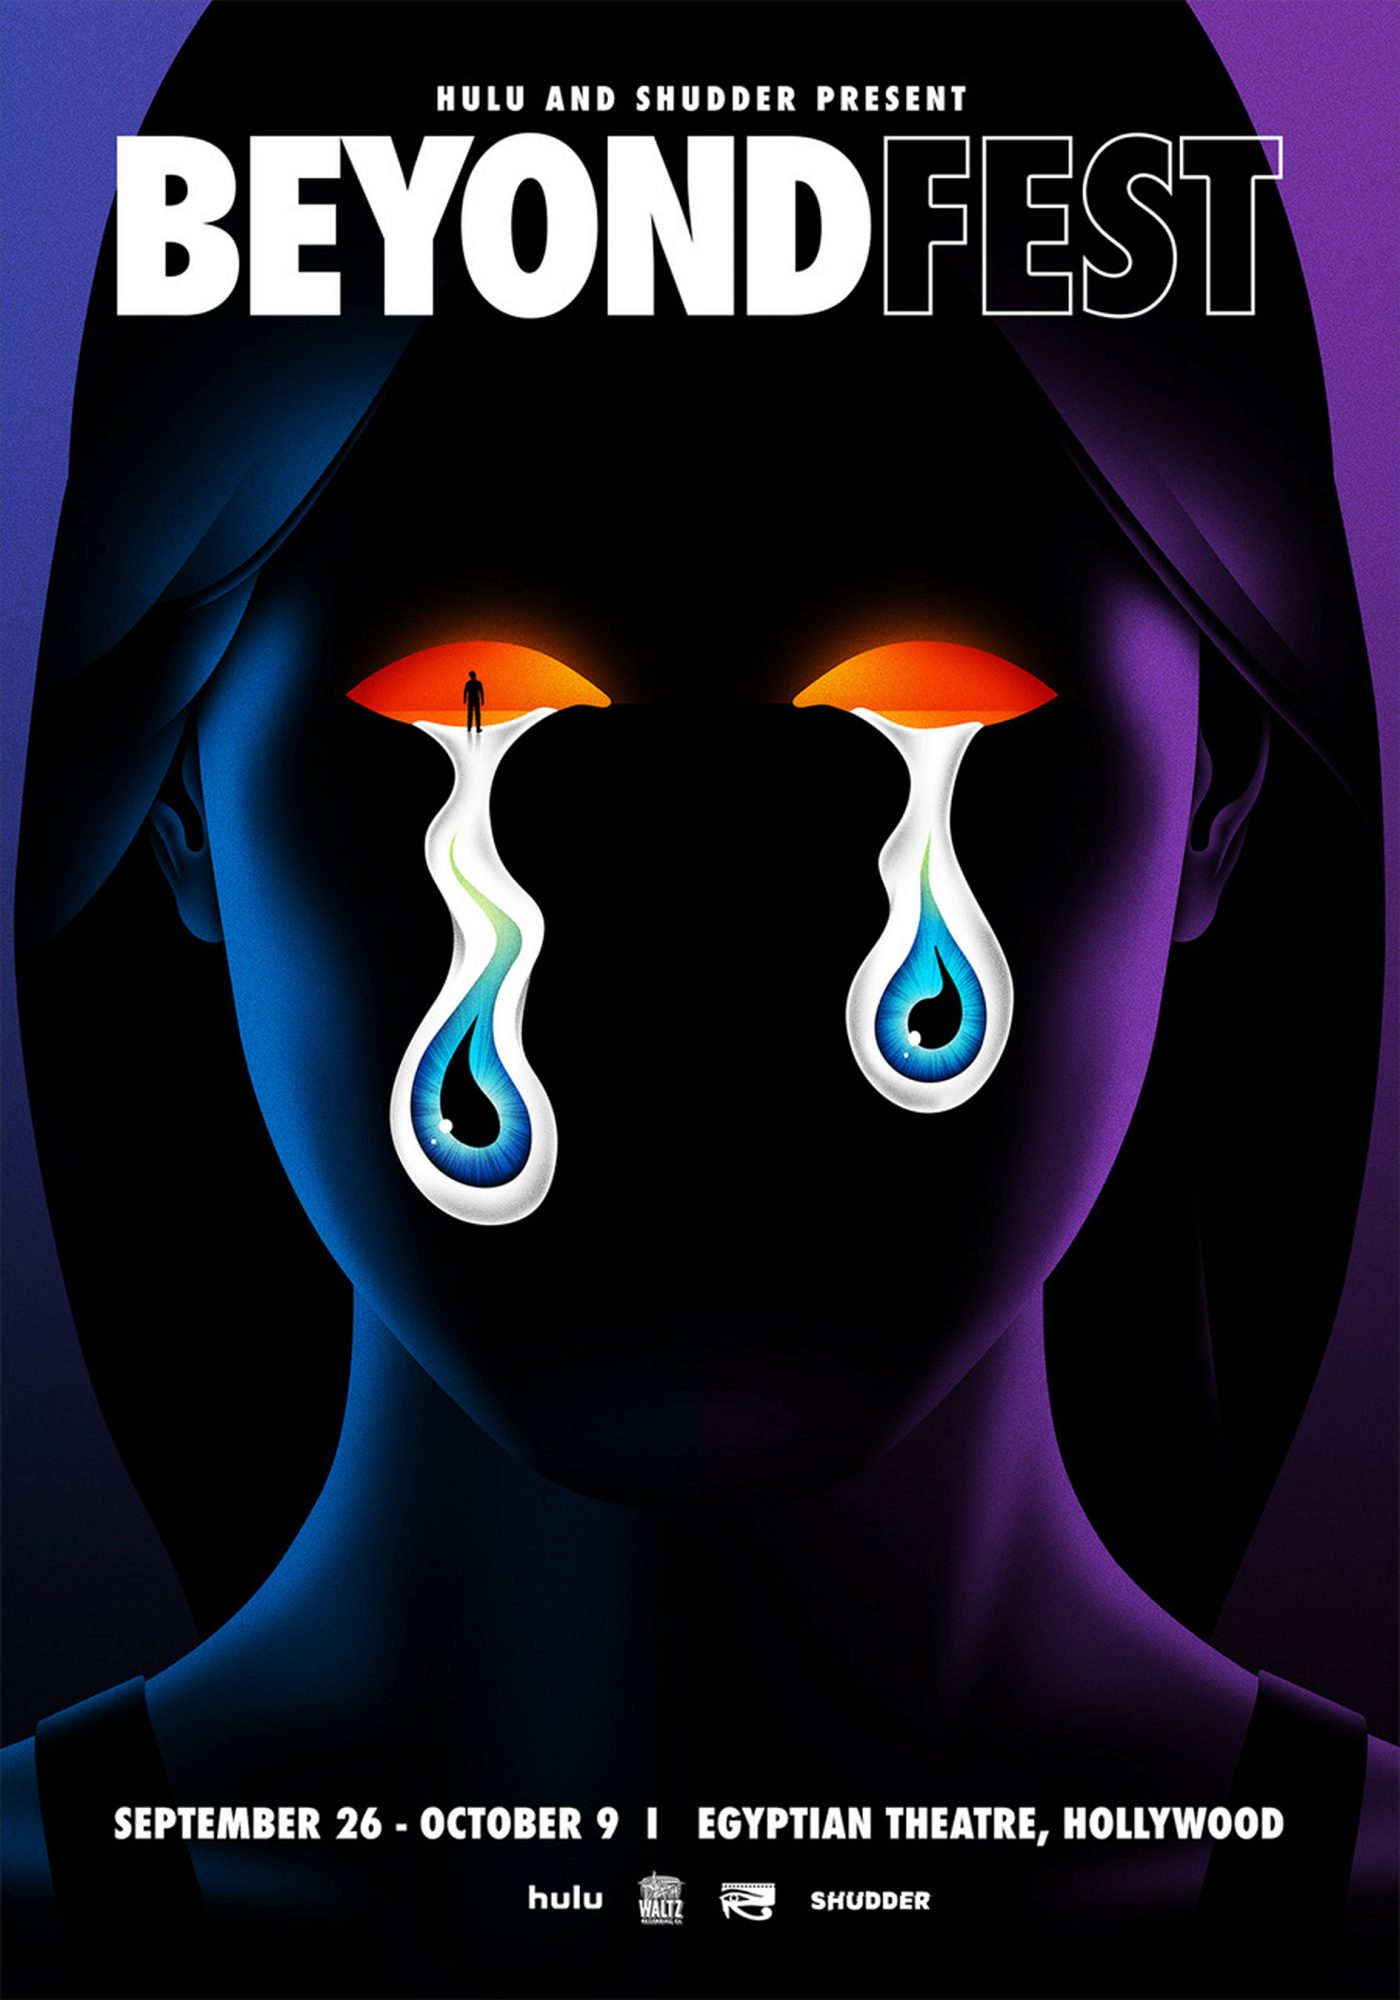 Halloween and Suspiria to screen at Beyond Fest